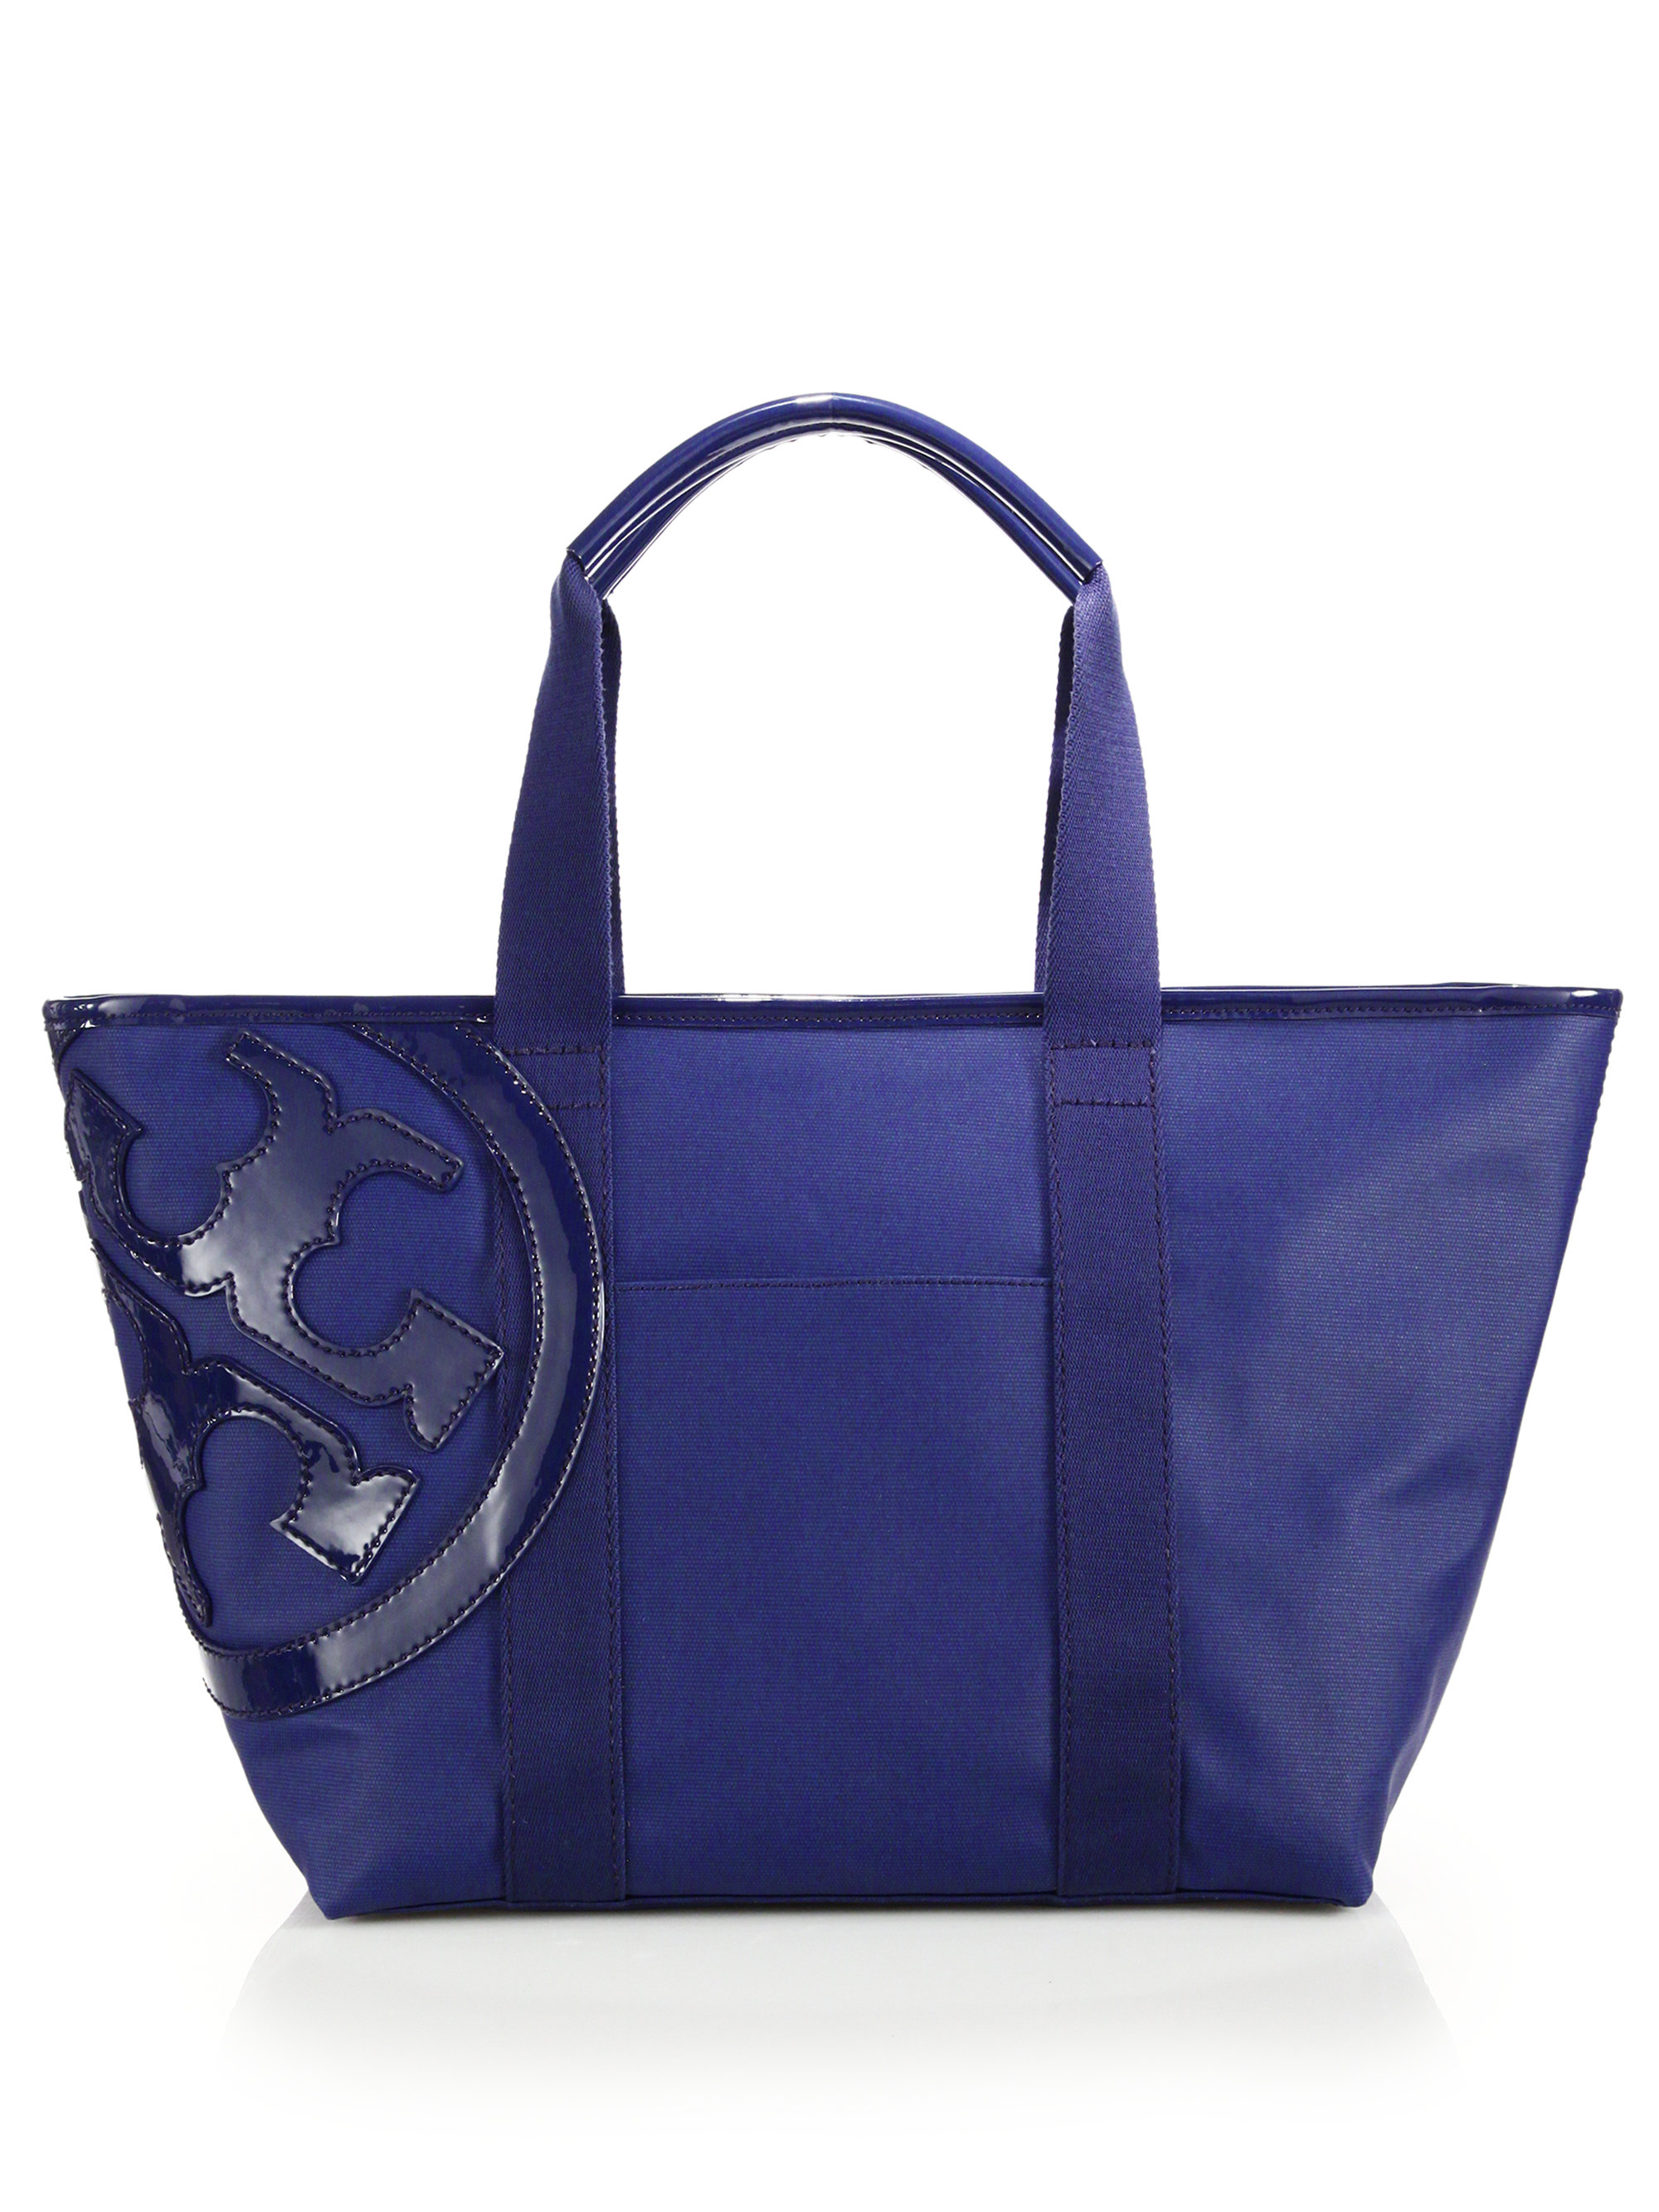 98dd6084d835 Lyst - Tory Burch Small Beach Canvas Tote in Blue